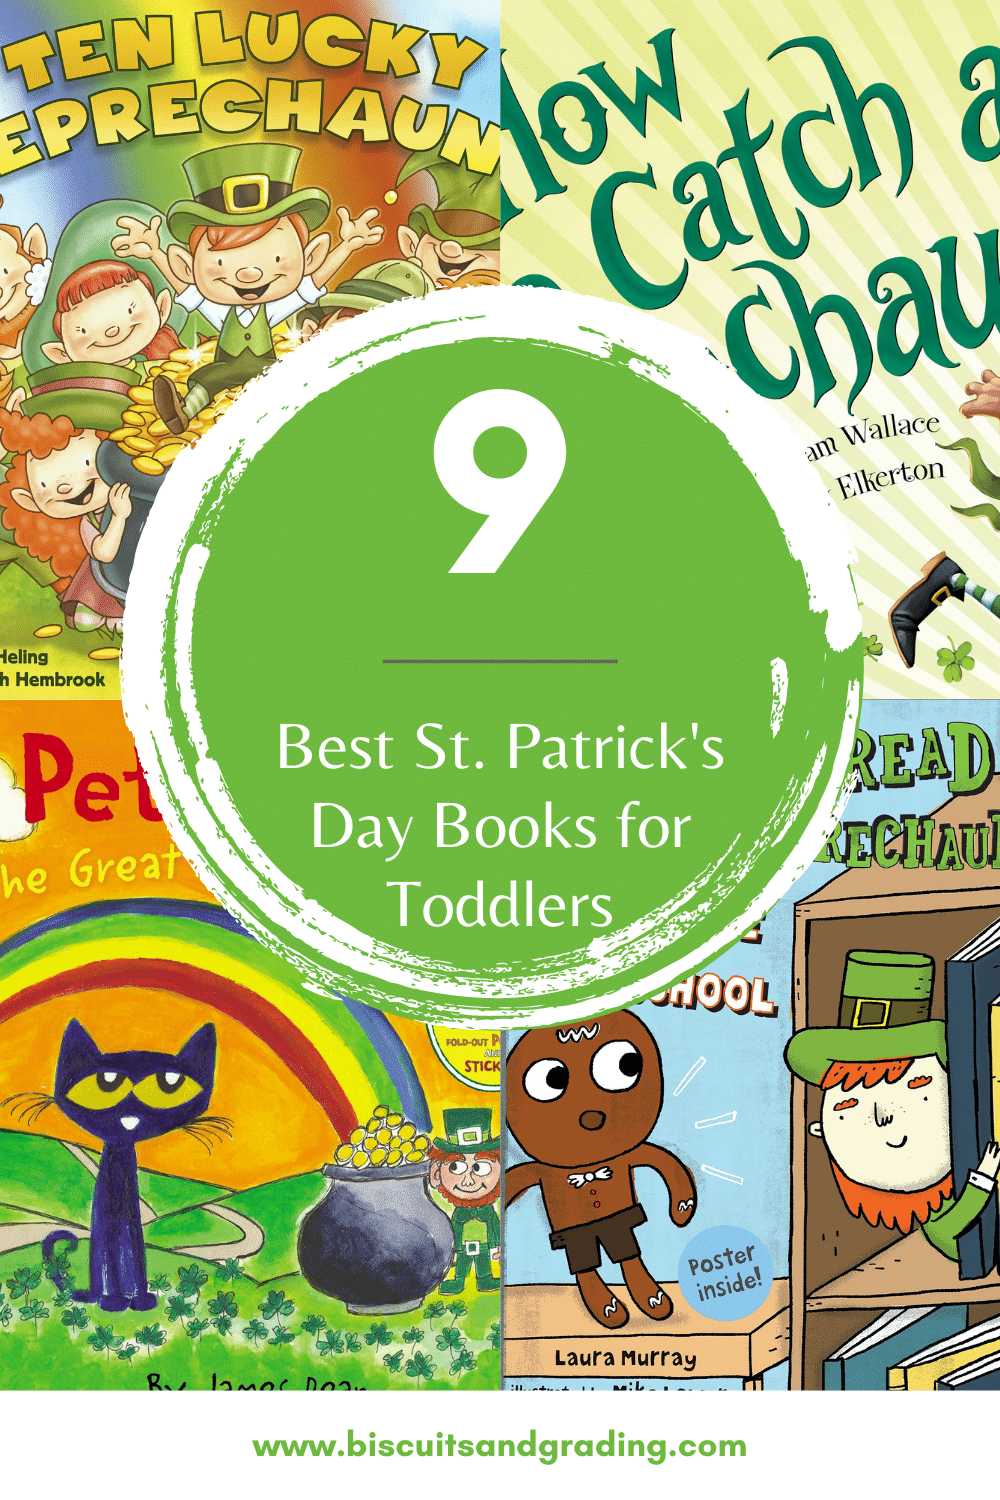 9 best St. Patrick's Day books for toddlers and preschoolers